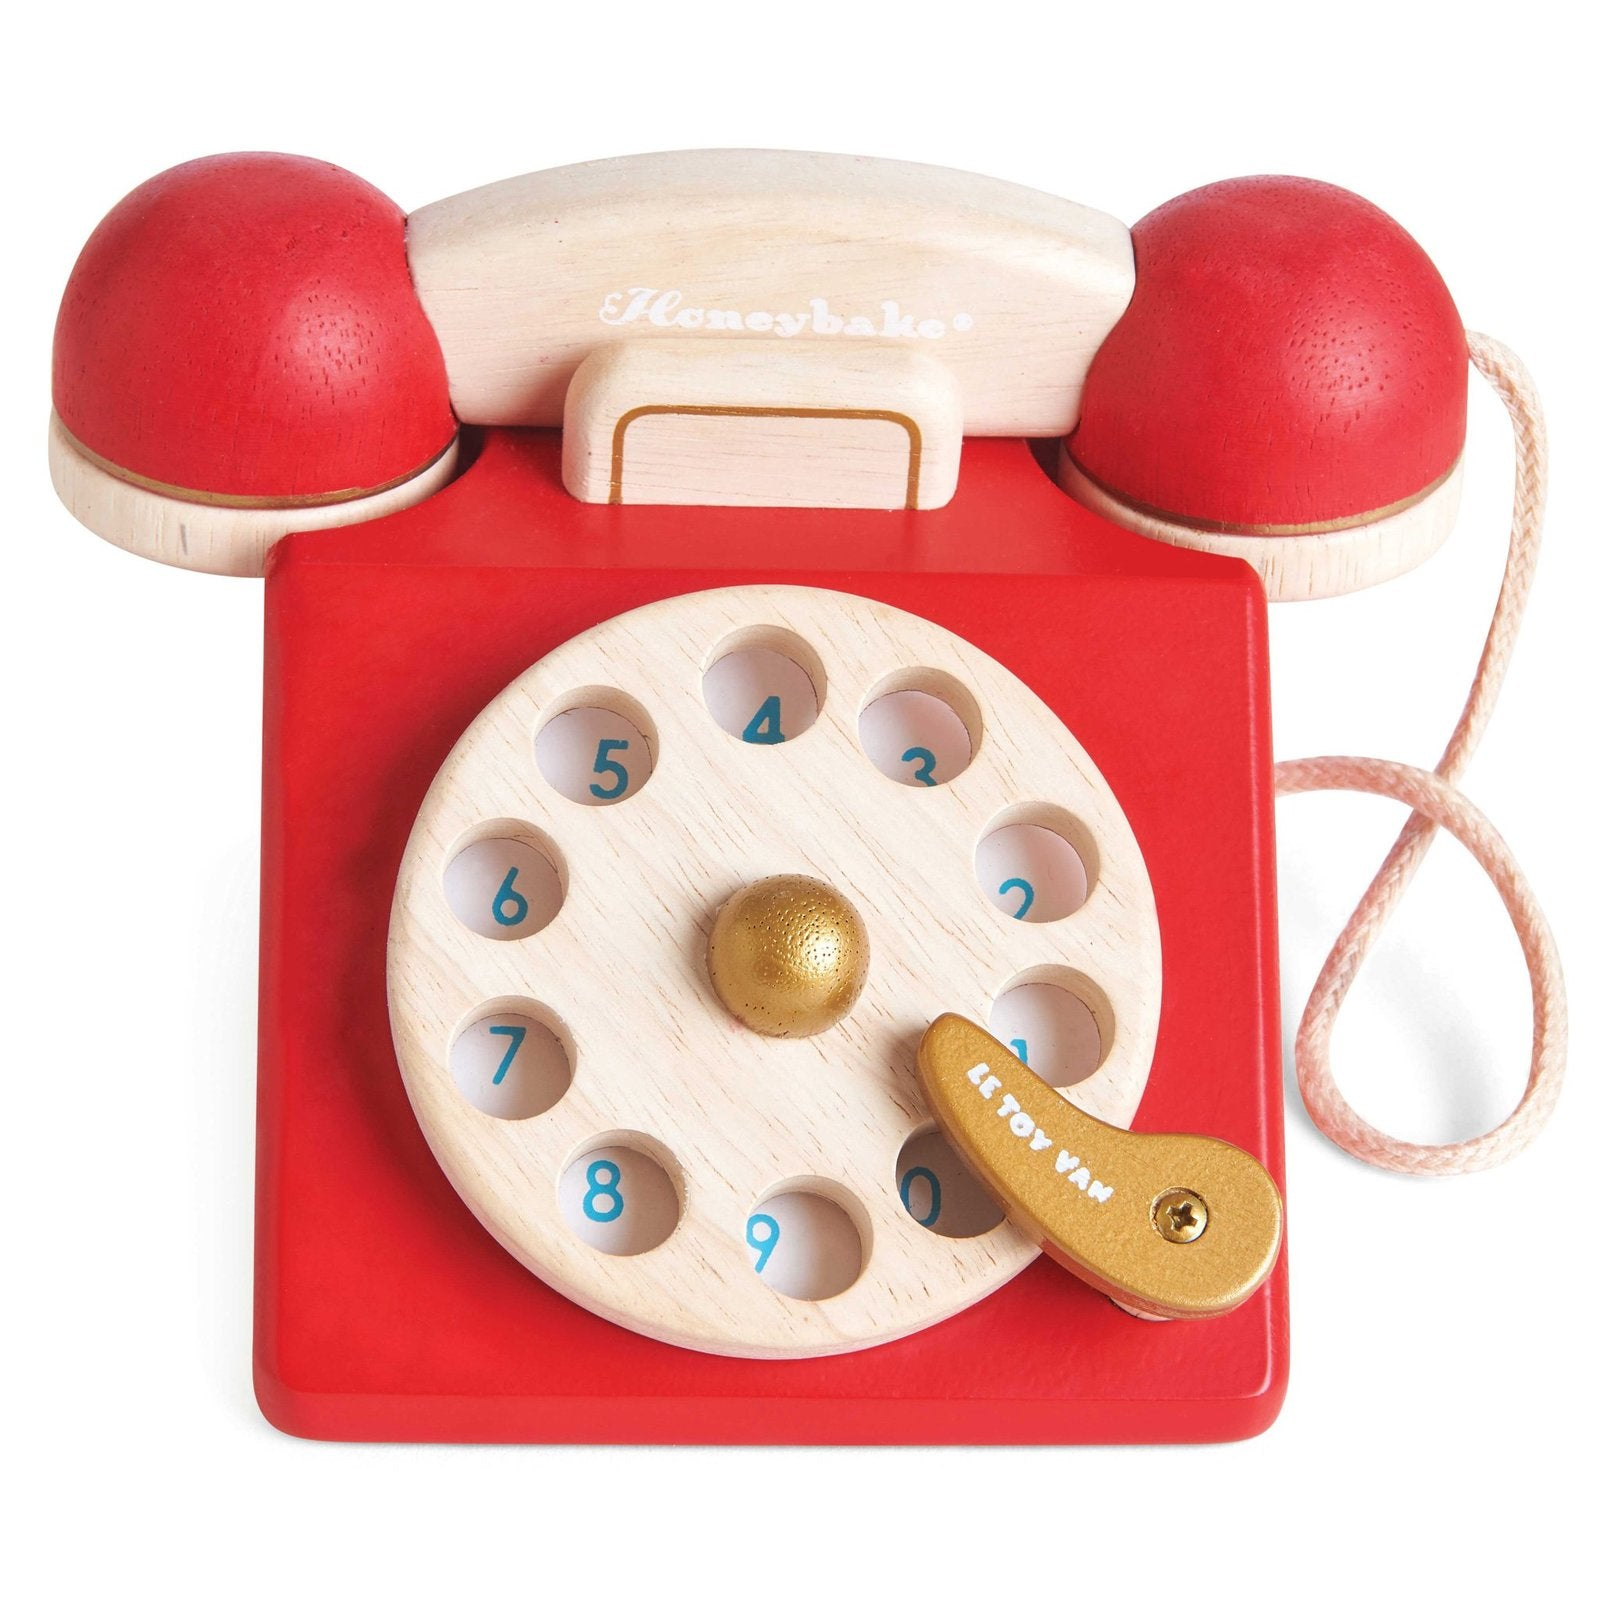 Le Toy Van - Wooden Vintage Phone